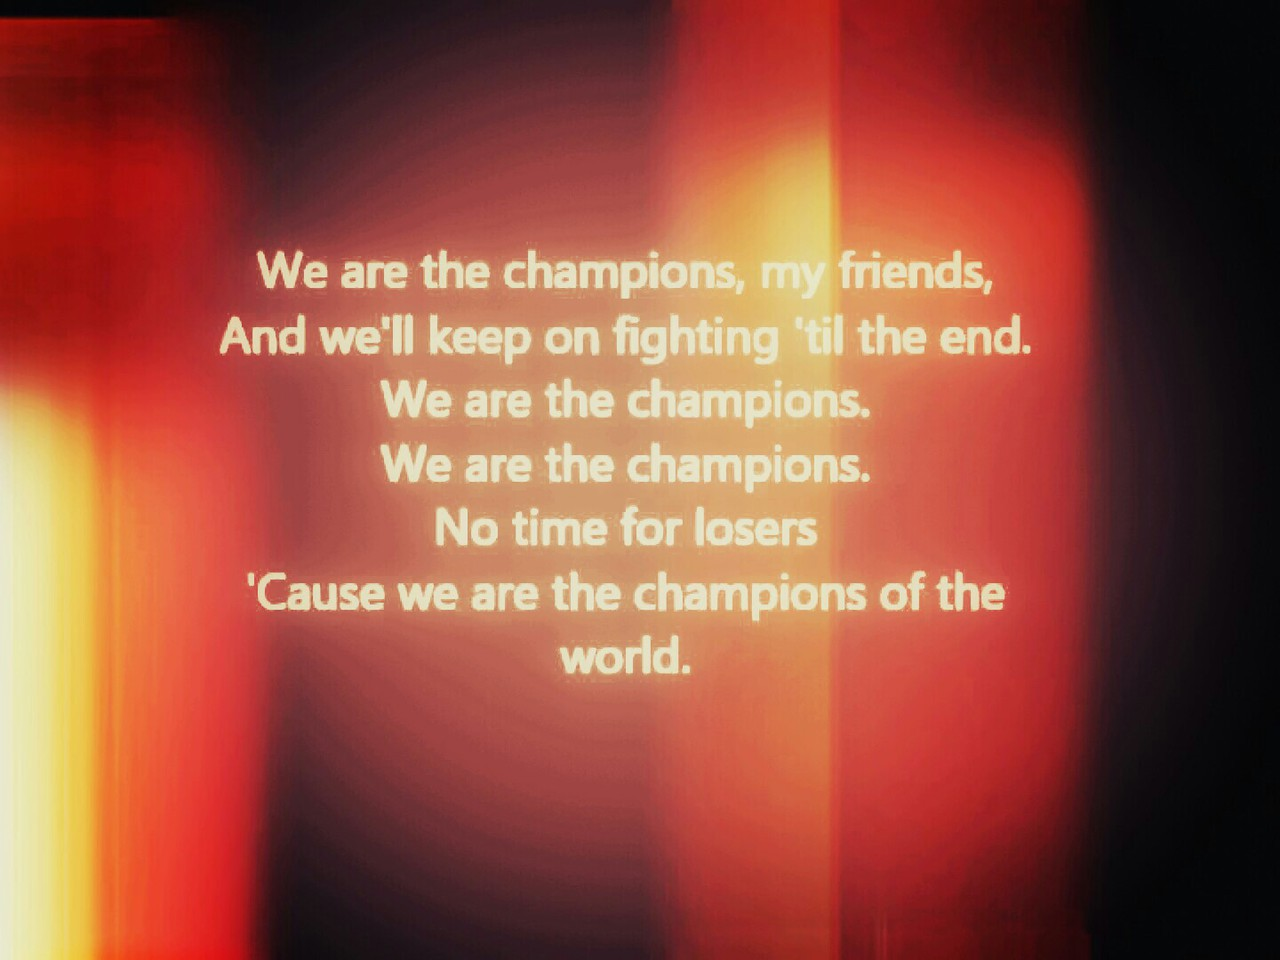 Lyrics, Queen, and we are the champions image